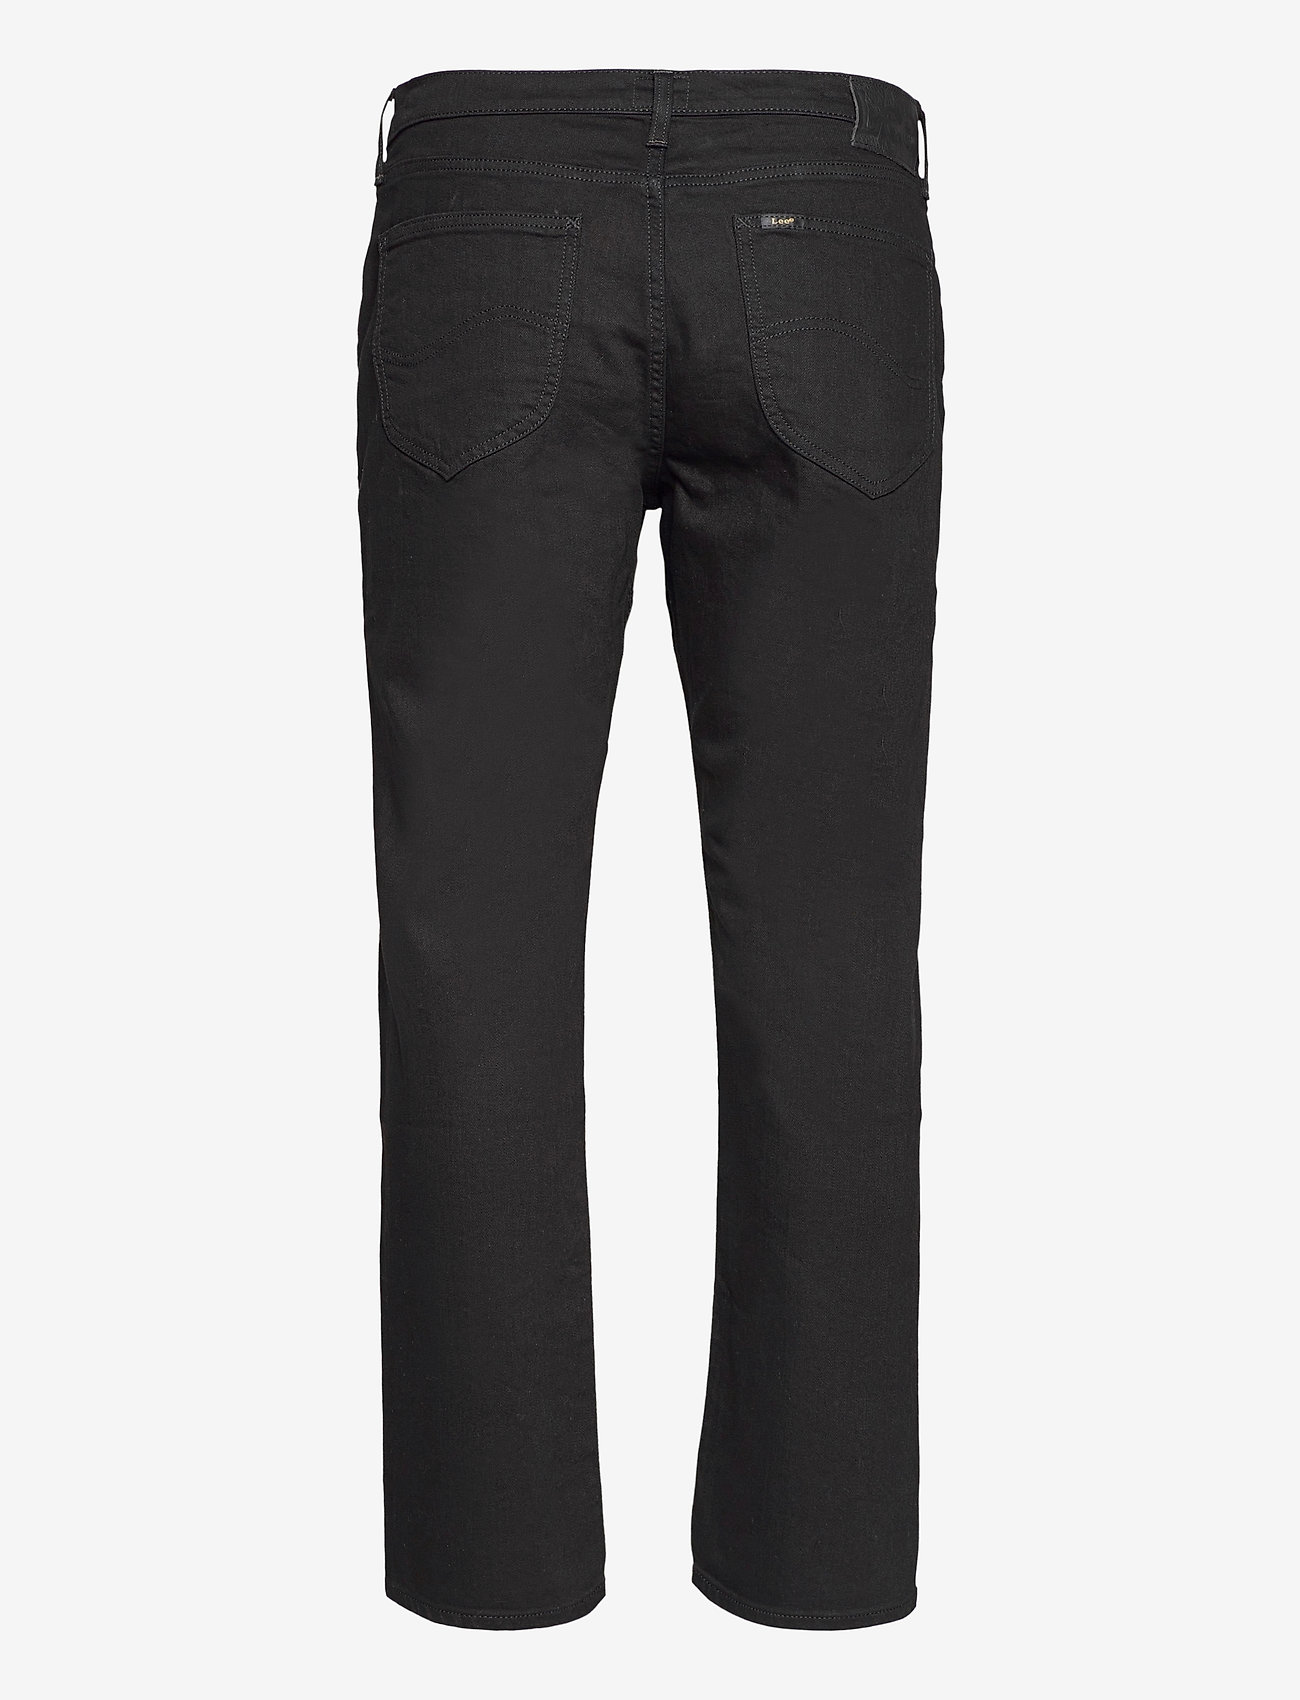 Lee Jeans - WEST - relaxed jeans - clean black - 1